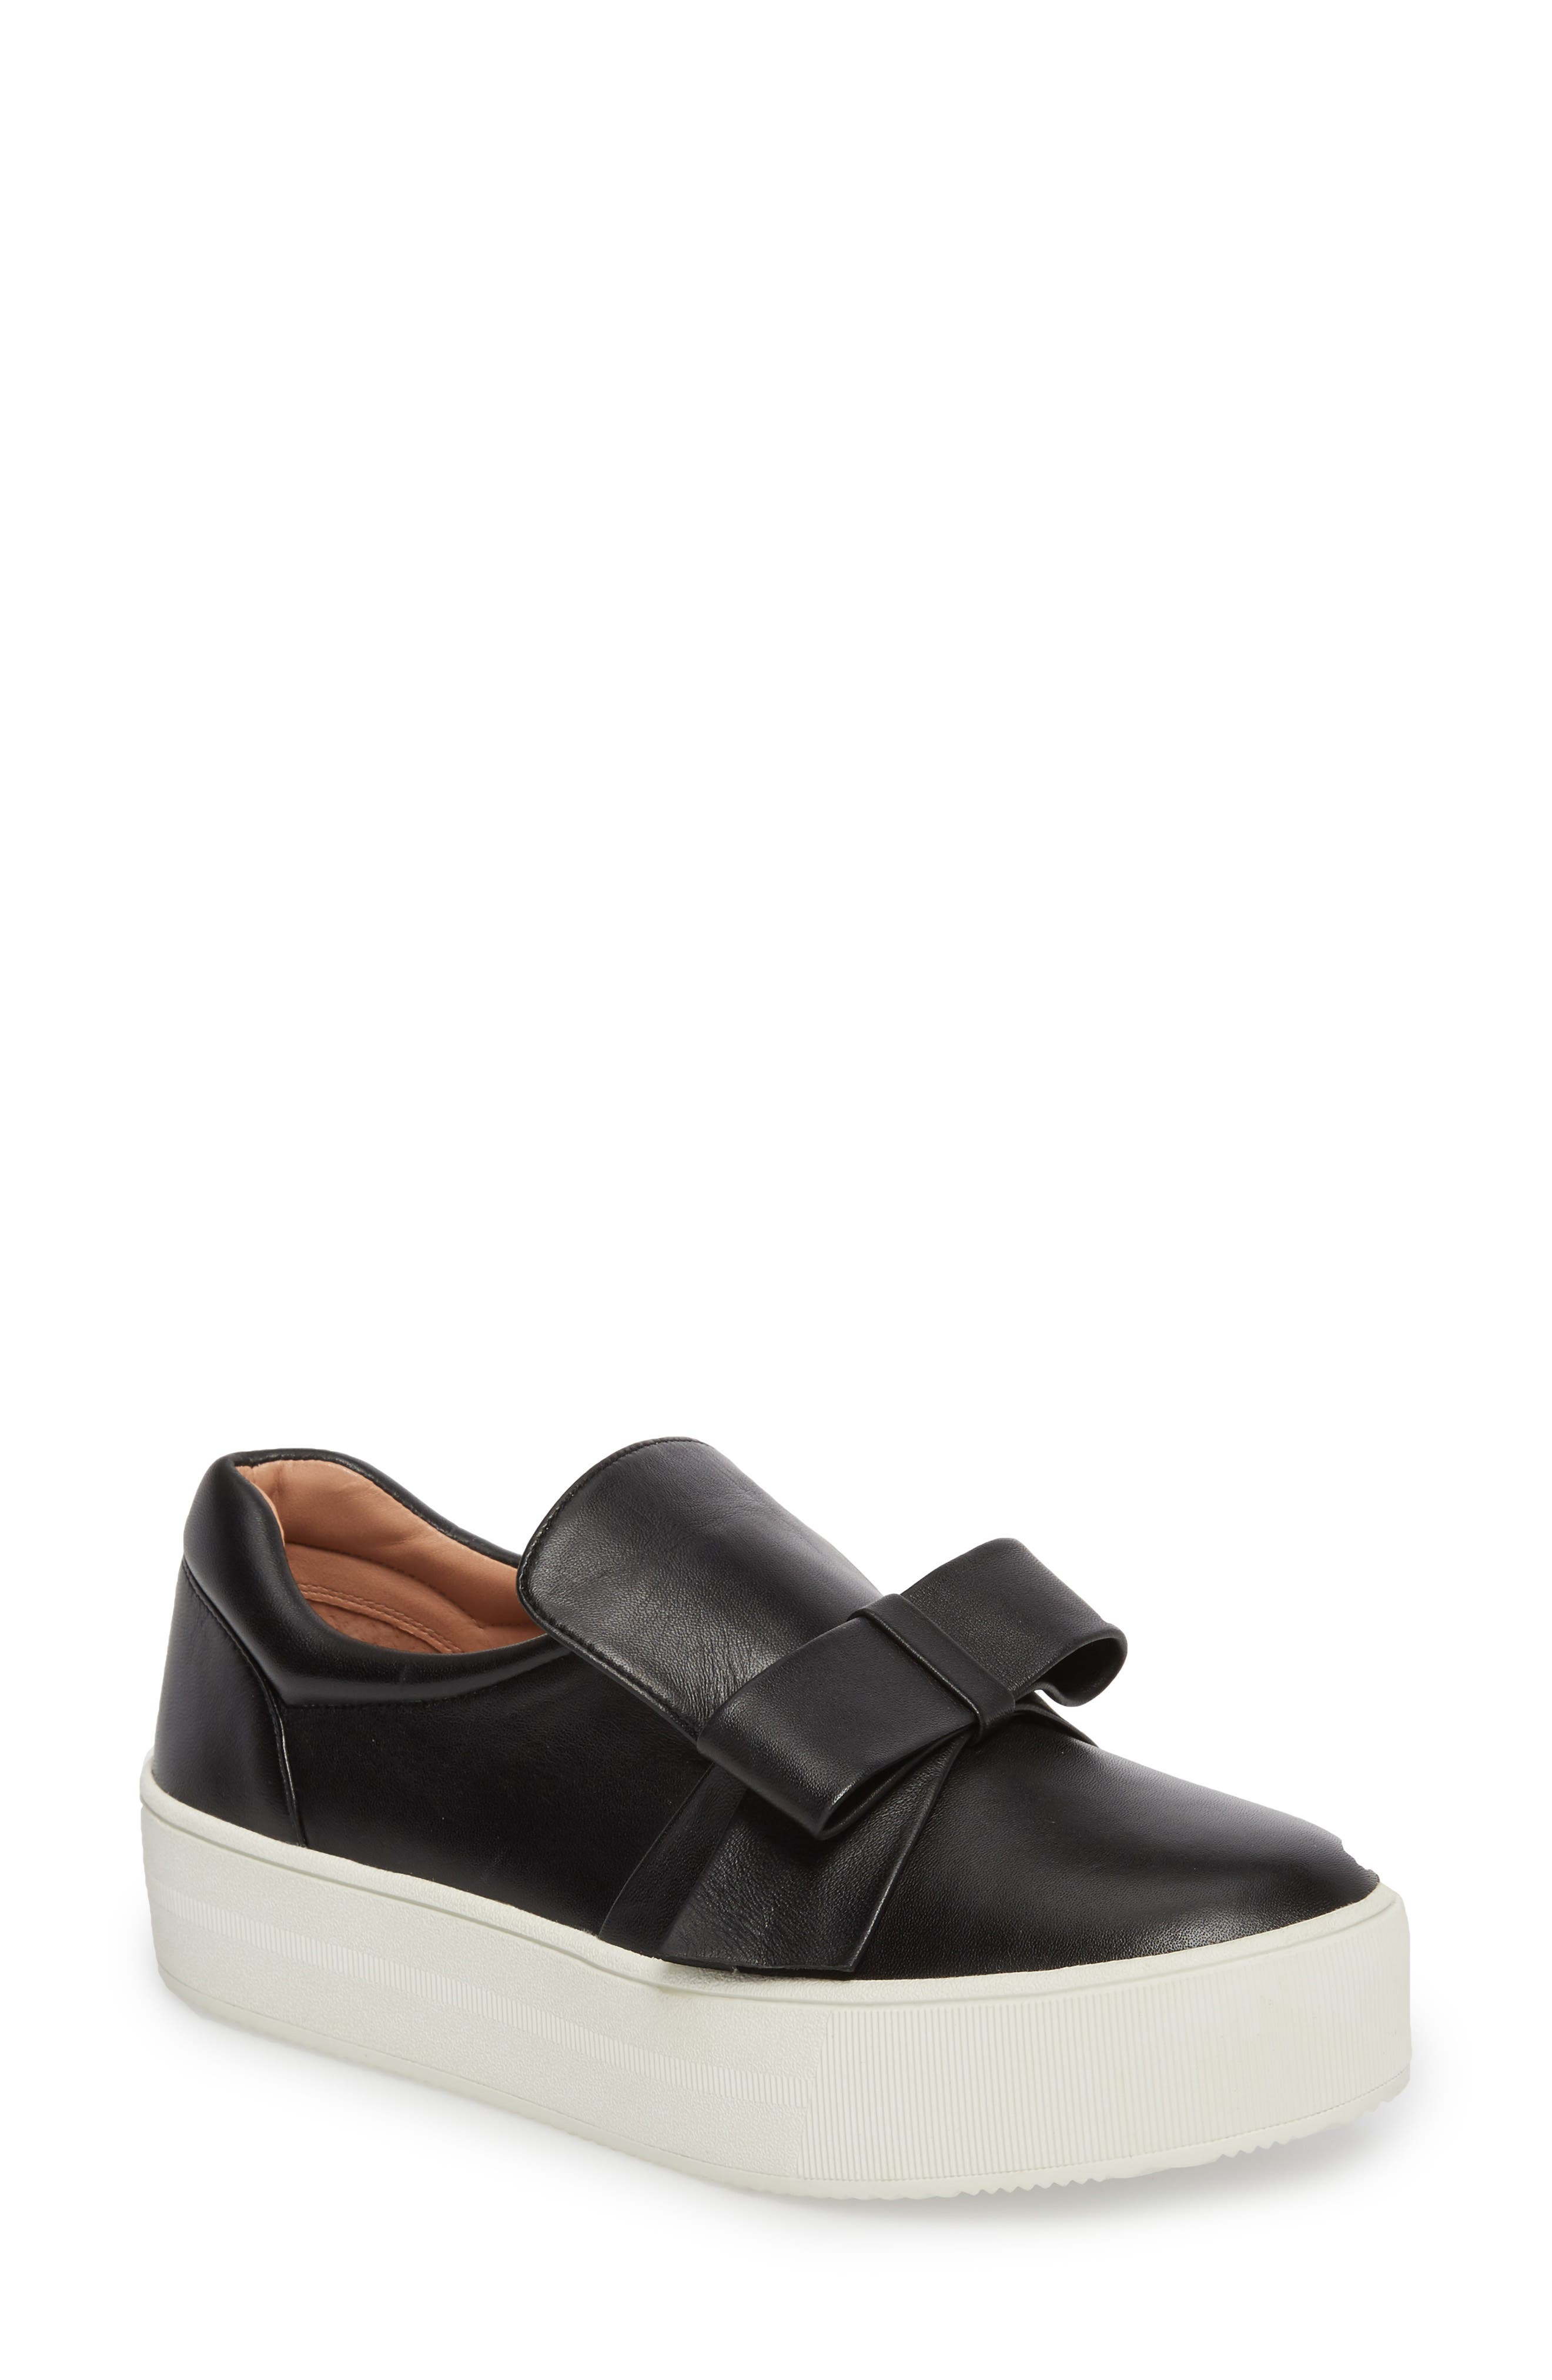 Alternate Image 1 Selected - Linea Paolo Vania Bow Platform Sneaker (Women)